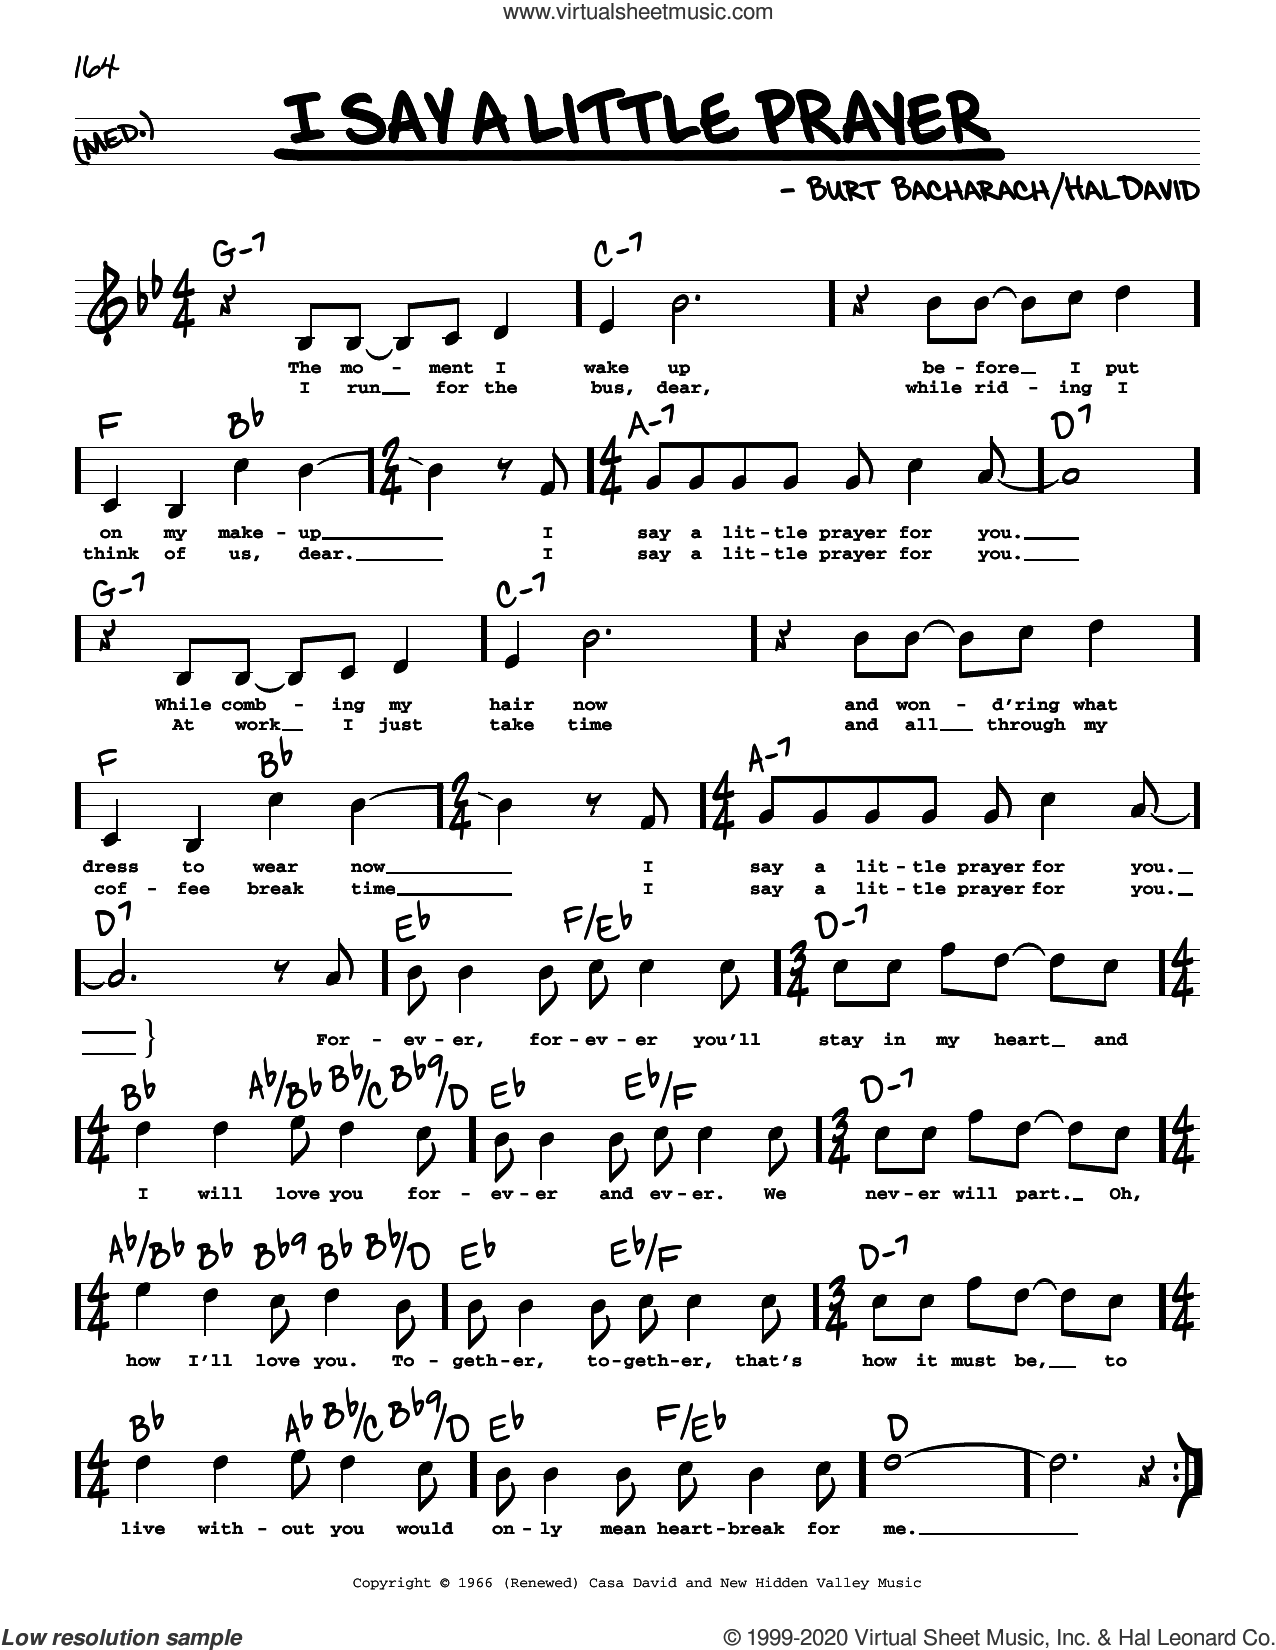 I Say A Little Prayer (High Voice) sheet music for voice and other instruments (high voice) by Dionne Warwick, Diana King, Burt Bacharach and Hal David, intermediate skill level